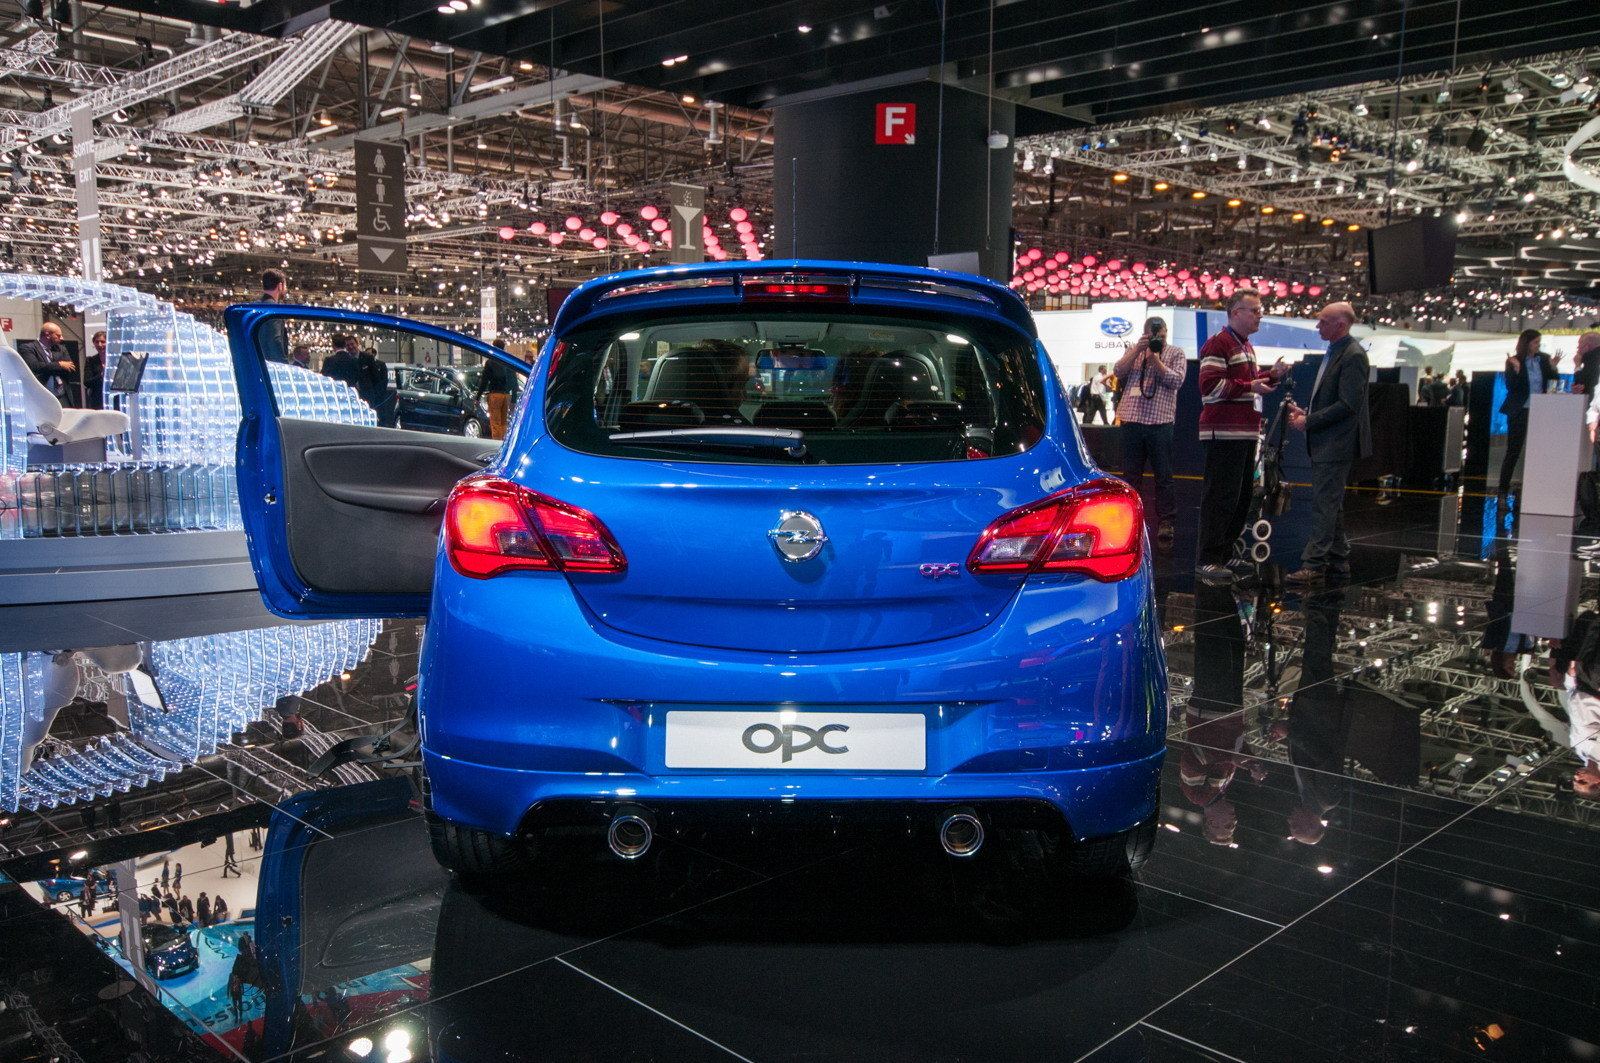 2015 opel corsa opc picture 622642 car review top speed. Black Bedroom Furniture Sets. Home Design Ideas